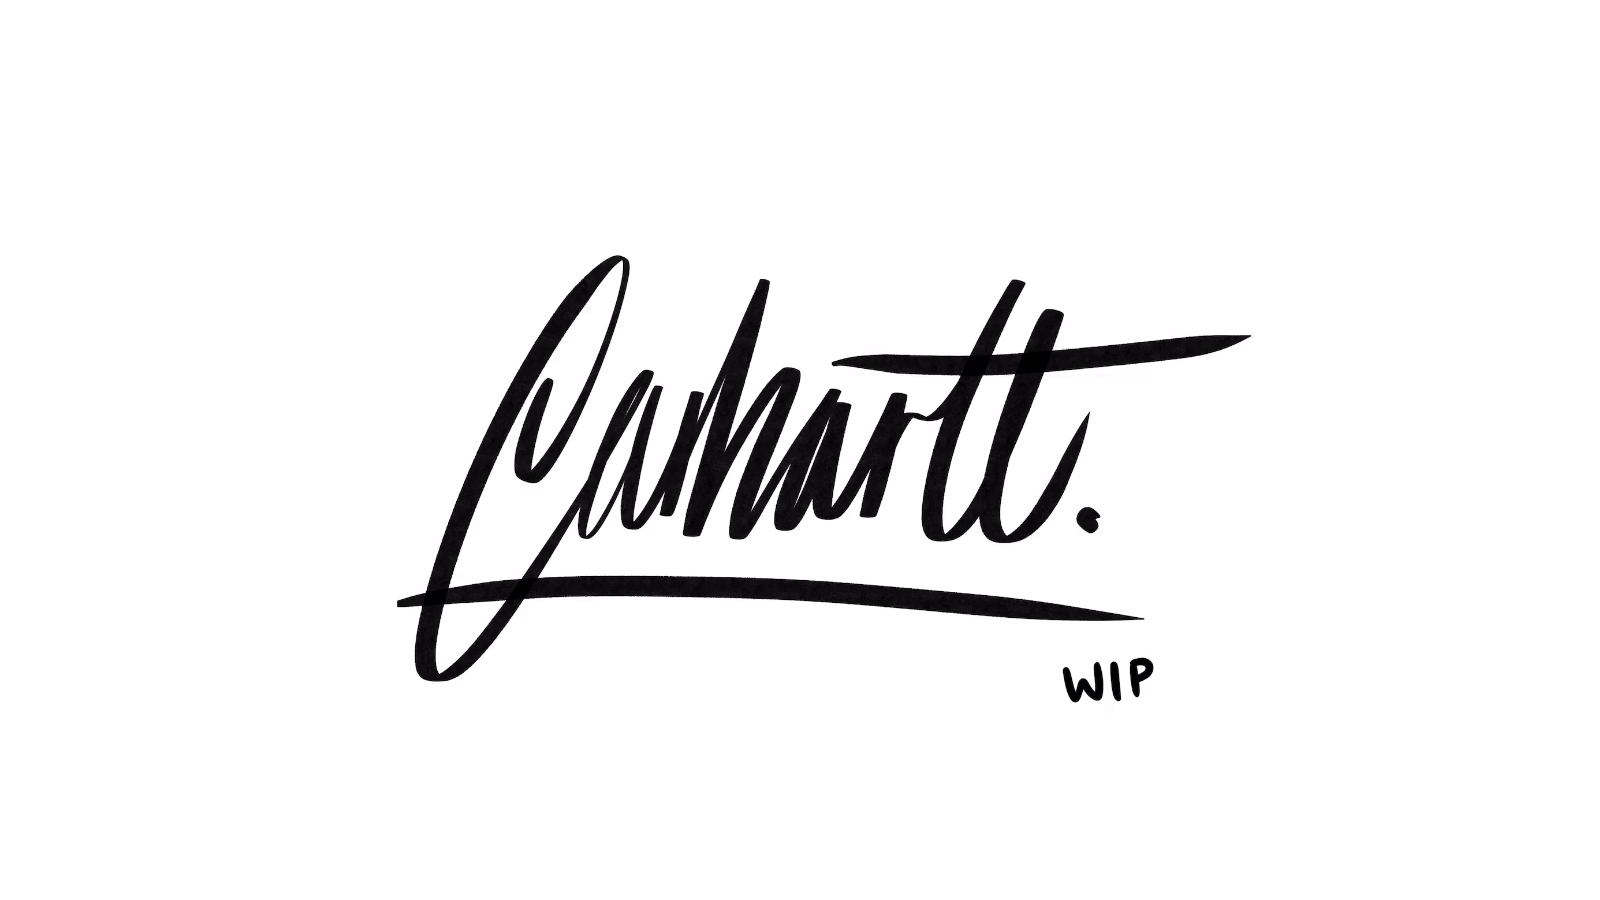 premium selection united states order Free download Carhartt WIP by Charles Patterson on Dribbble ...